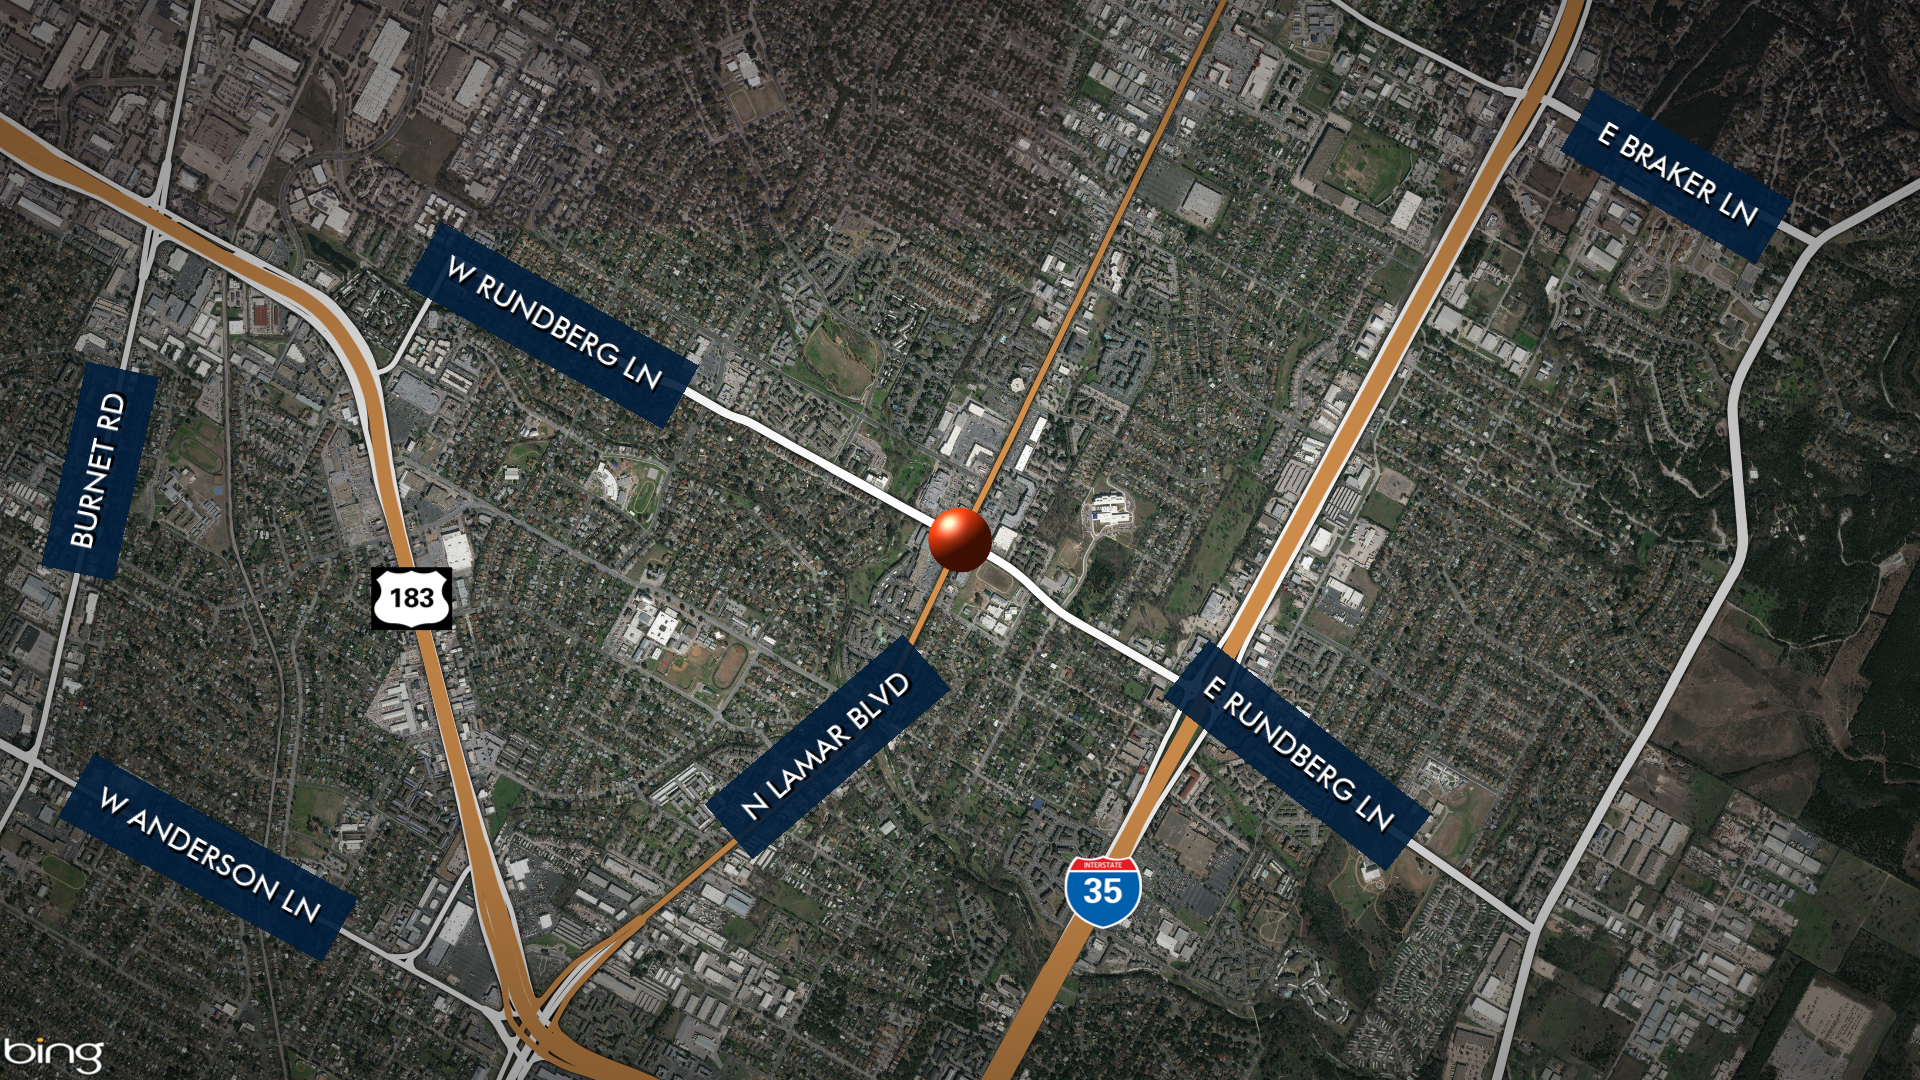 Location of homicide investigation in north Austin April 14, 2021 (KXAN map)